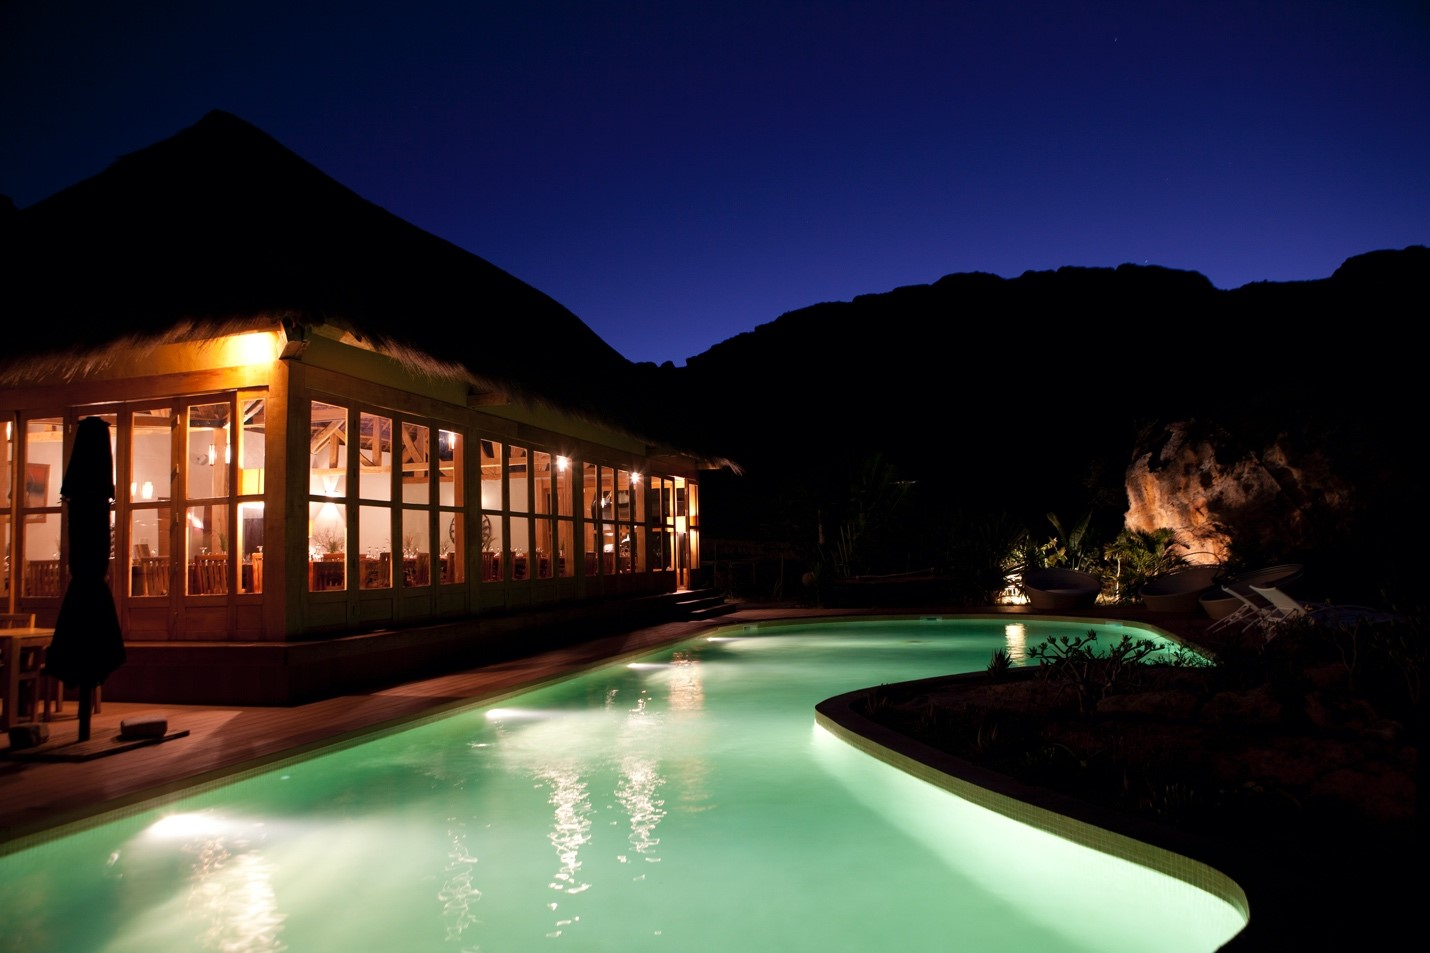 the glow of the pool lights up a lodge in madagascar